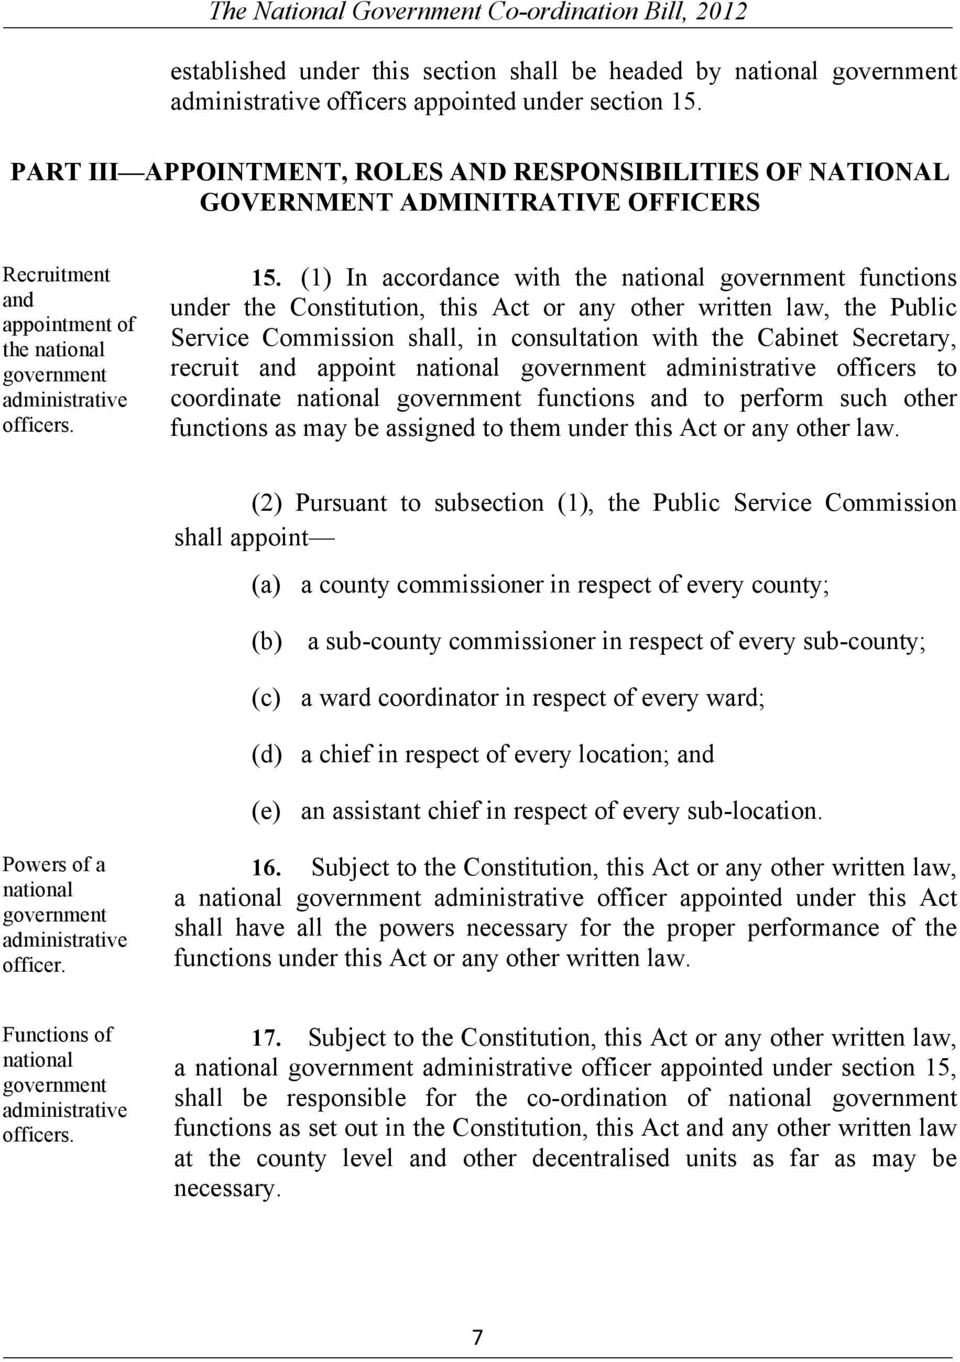 (1) In accordance with the national government functions under the Constitution, this Act or any other written law, the Public Service Commission shall, in consultation with the Cabinet Secretary,